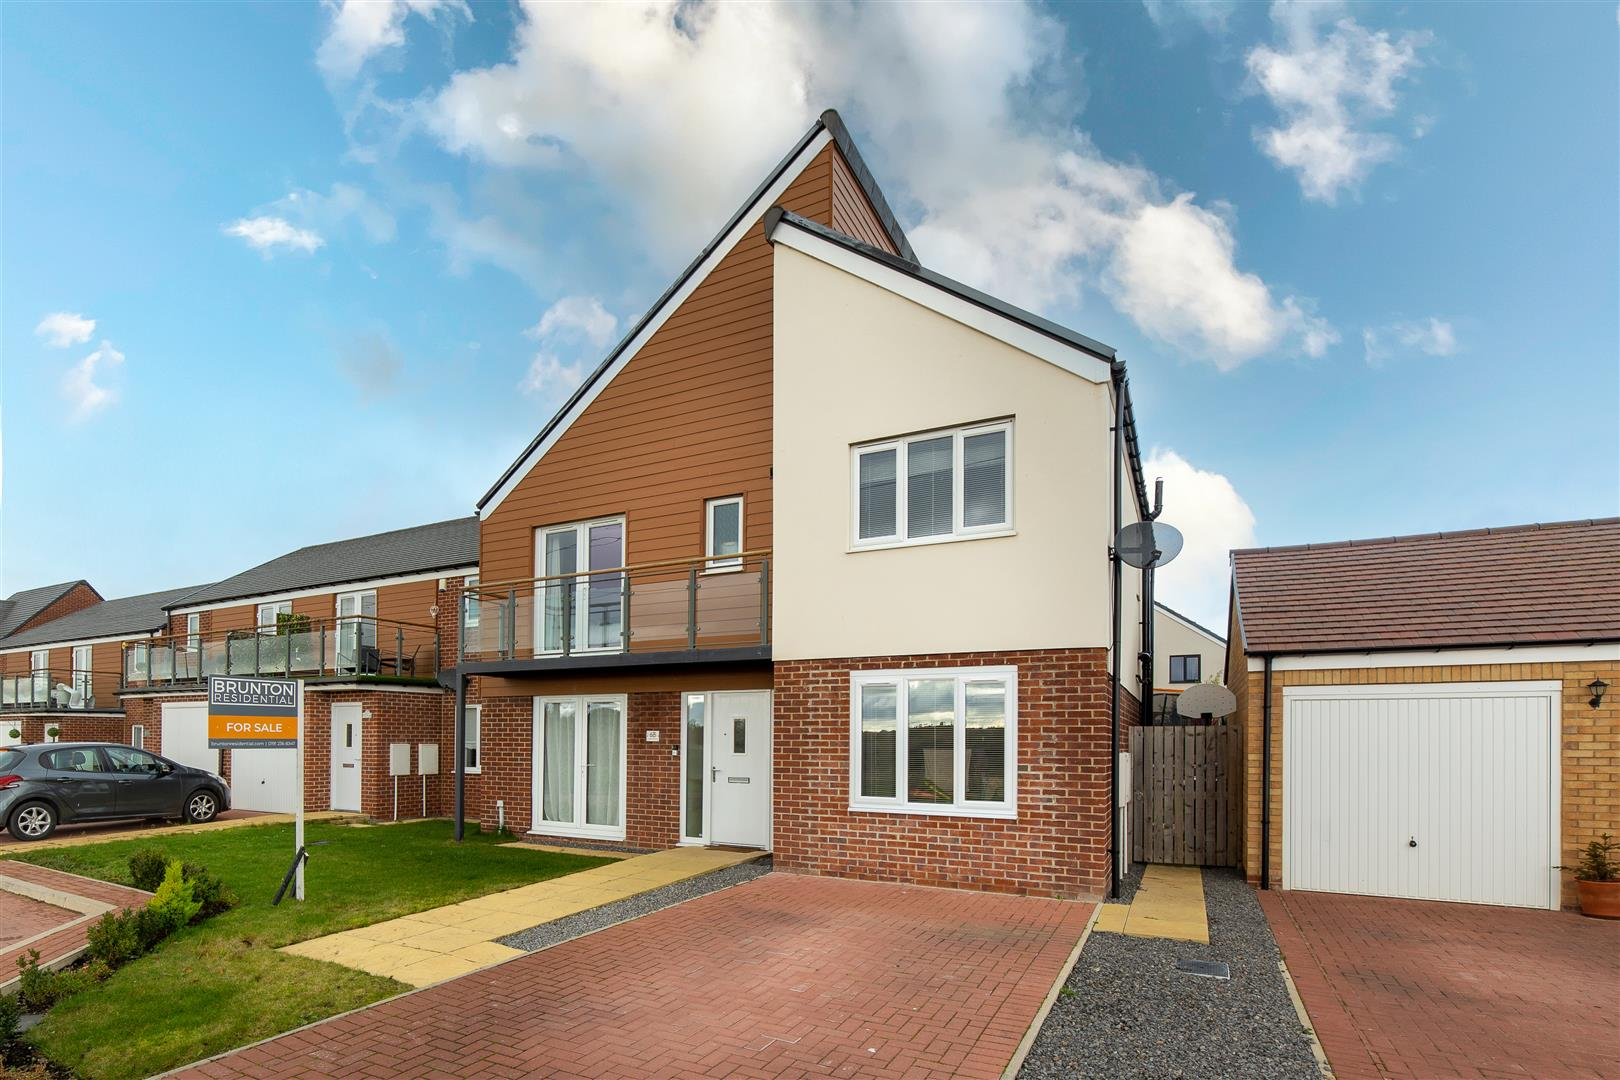 5 bed detached house for sale in Newcastle Upon Tyne, NE13 9DD - Property Image 1